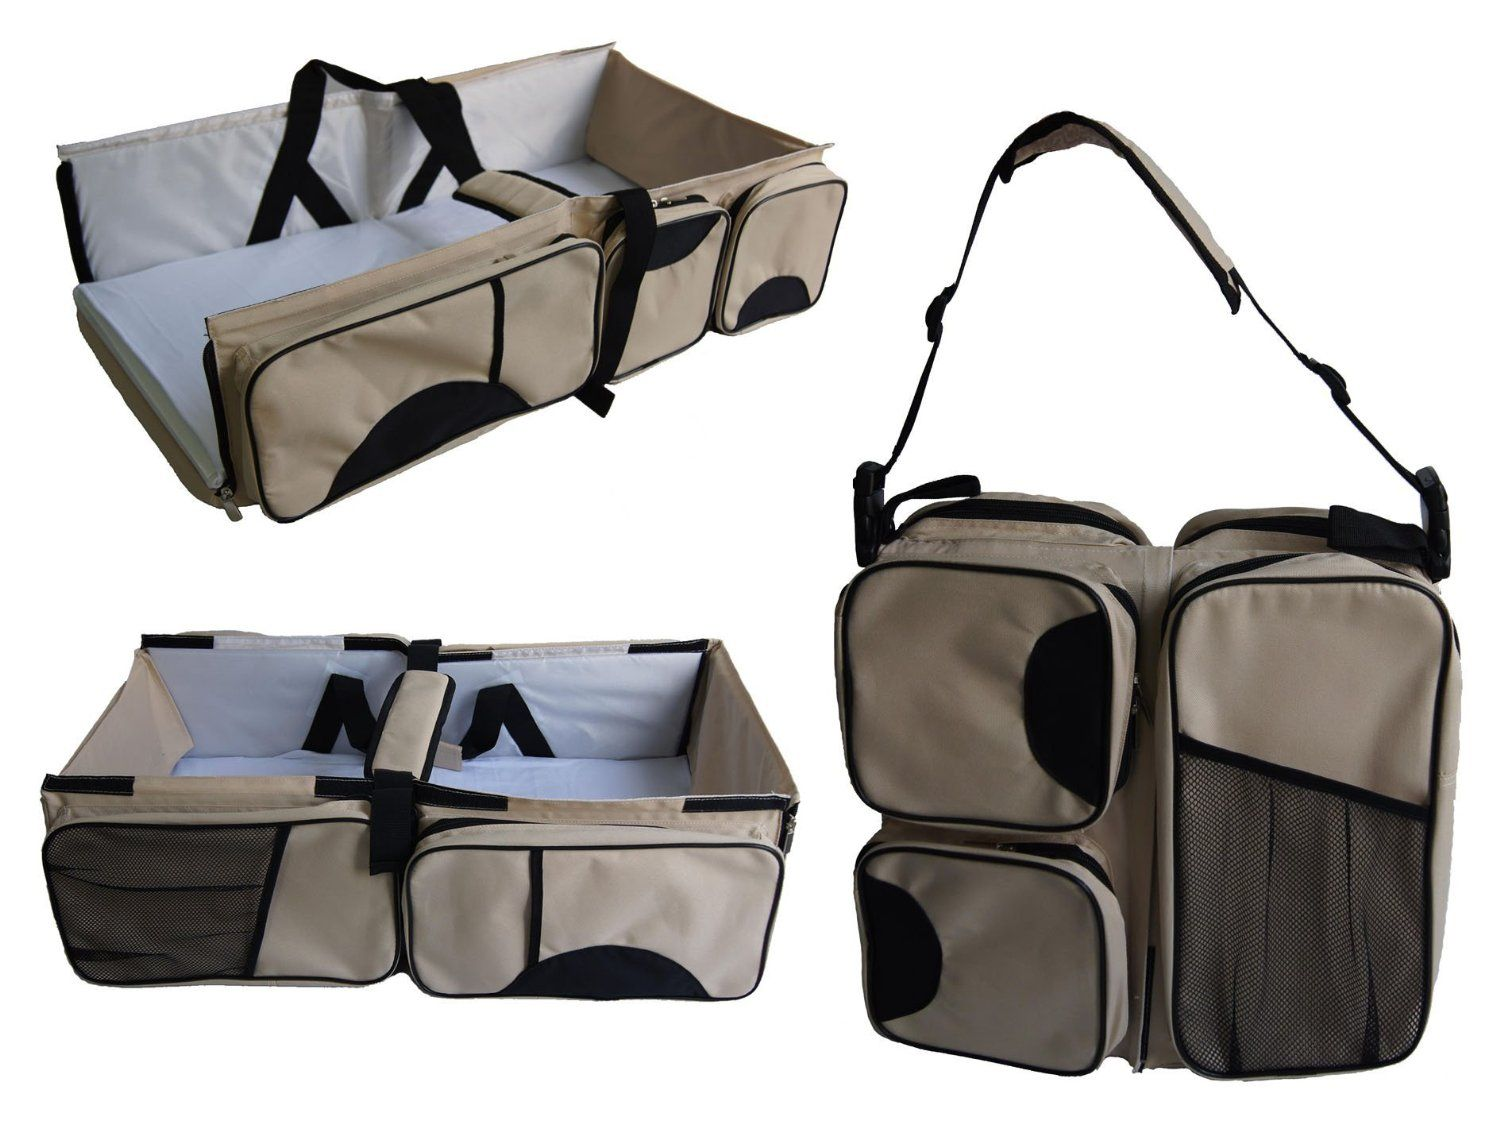 Boxum 3 In 1 Diaper Bag Travel Bassinet Change Station Cream Multi Purpose Baby Tote Bed Ny Infant Carrycot Crib Cot Nursery